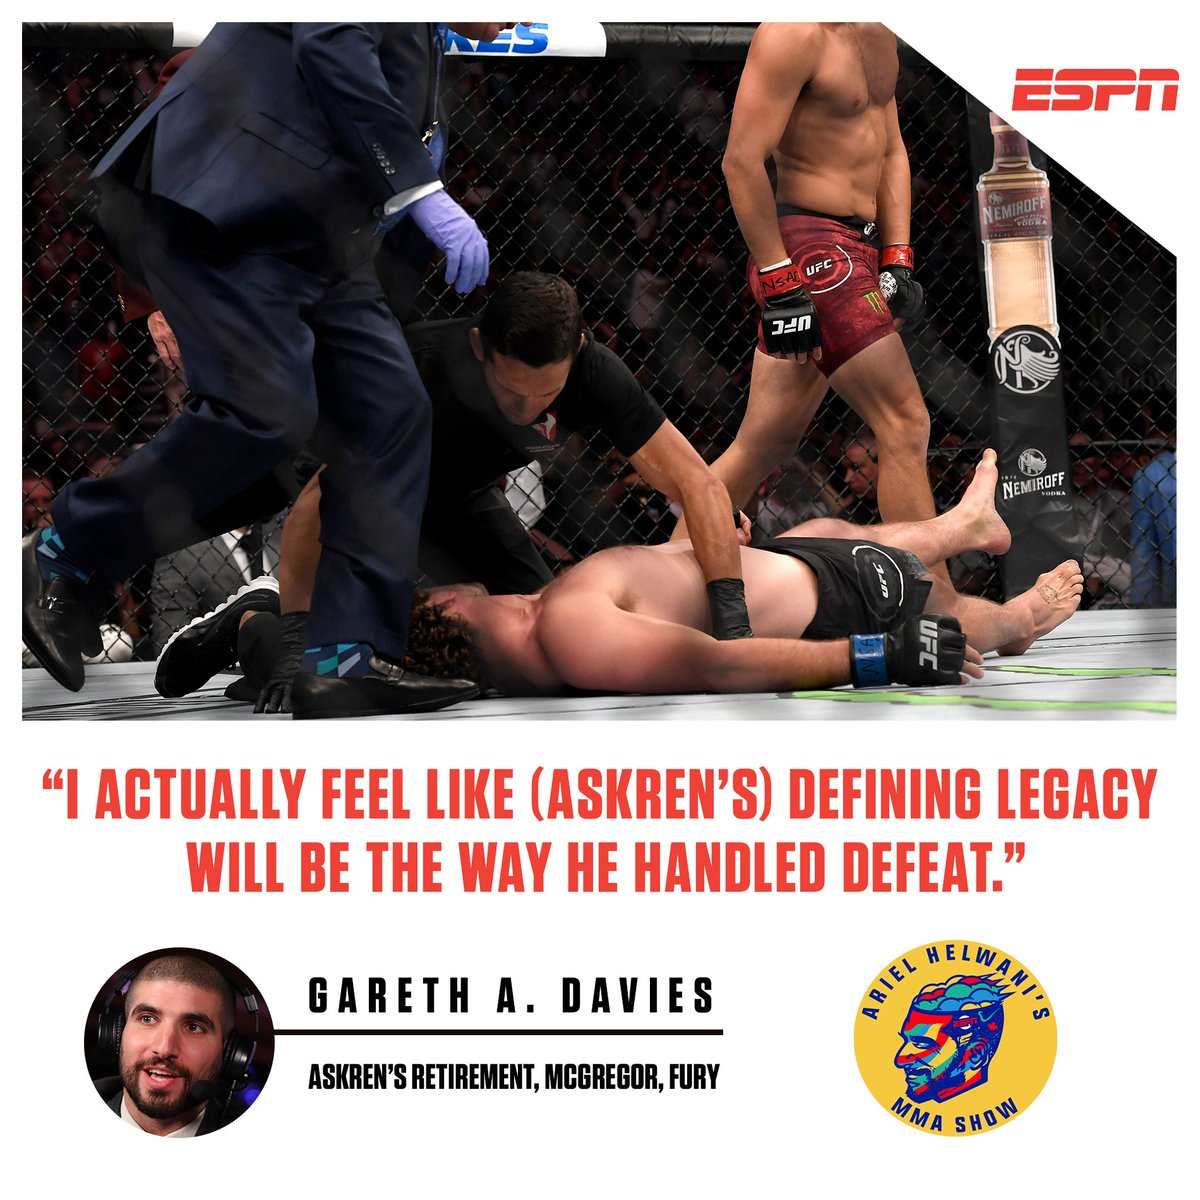 Today's podcast with @arielhelwani features the great @GarethADaviesDT for a conversation you do NOT want to miss.  LISTEN: https://es.pn/335XWv5